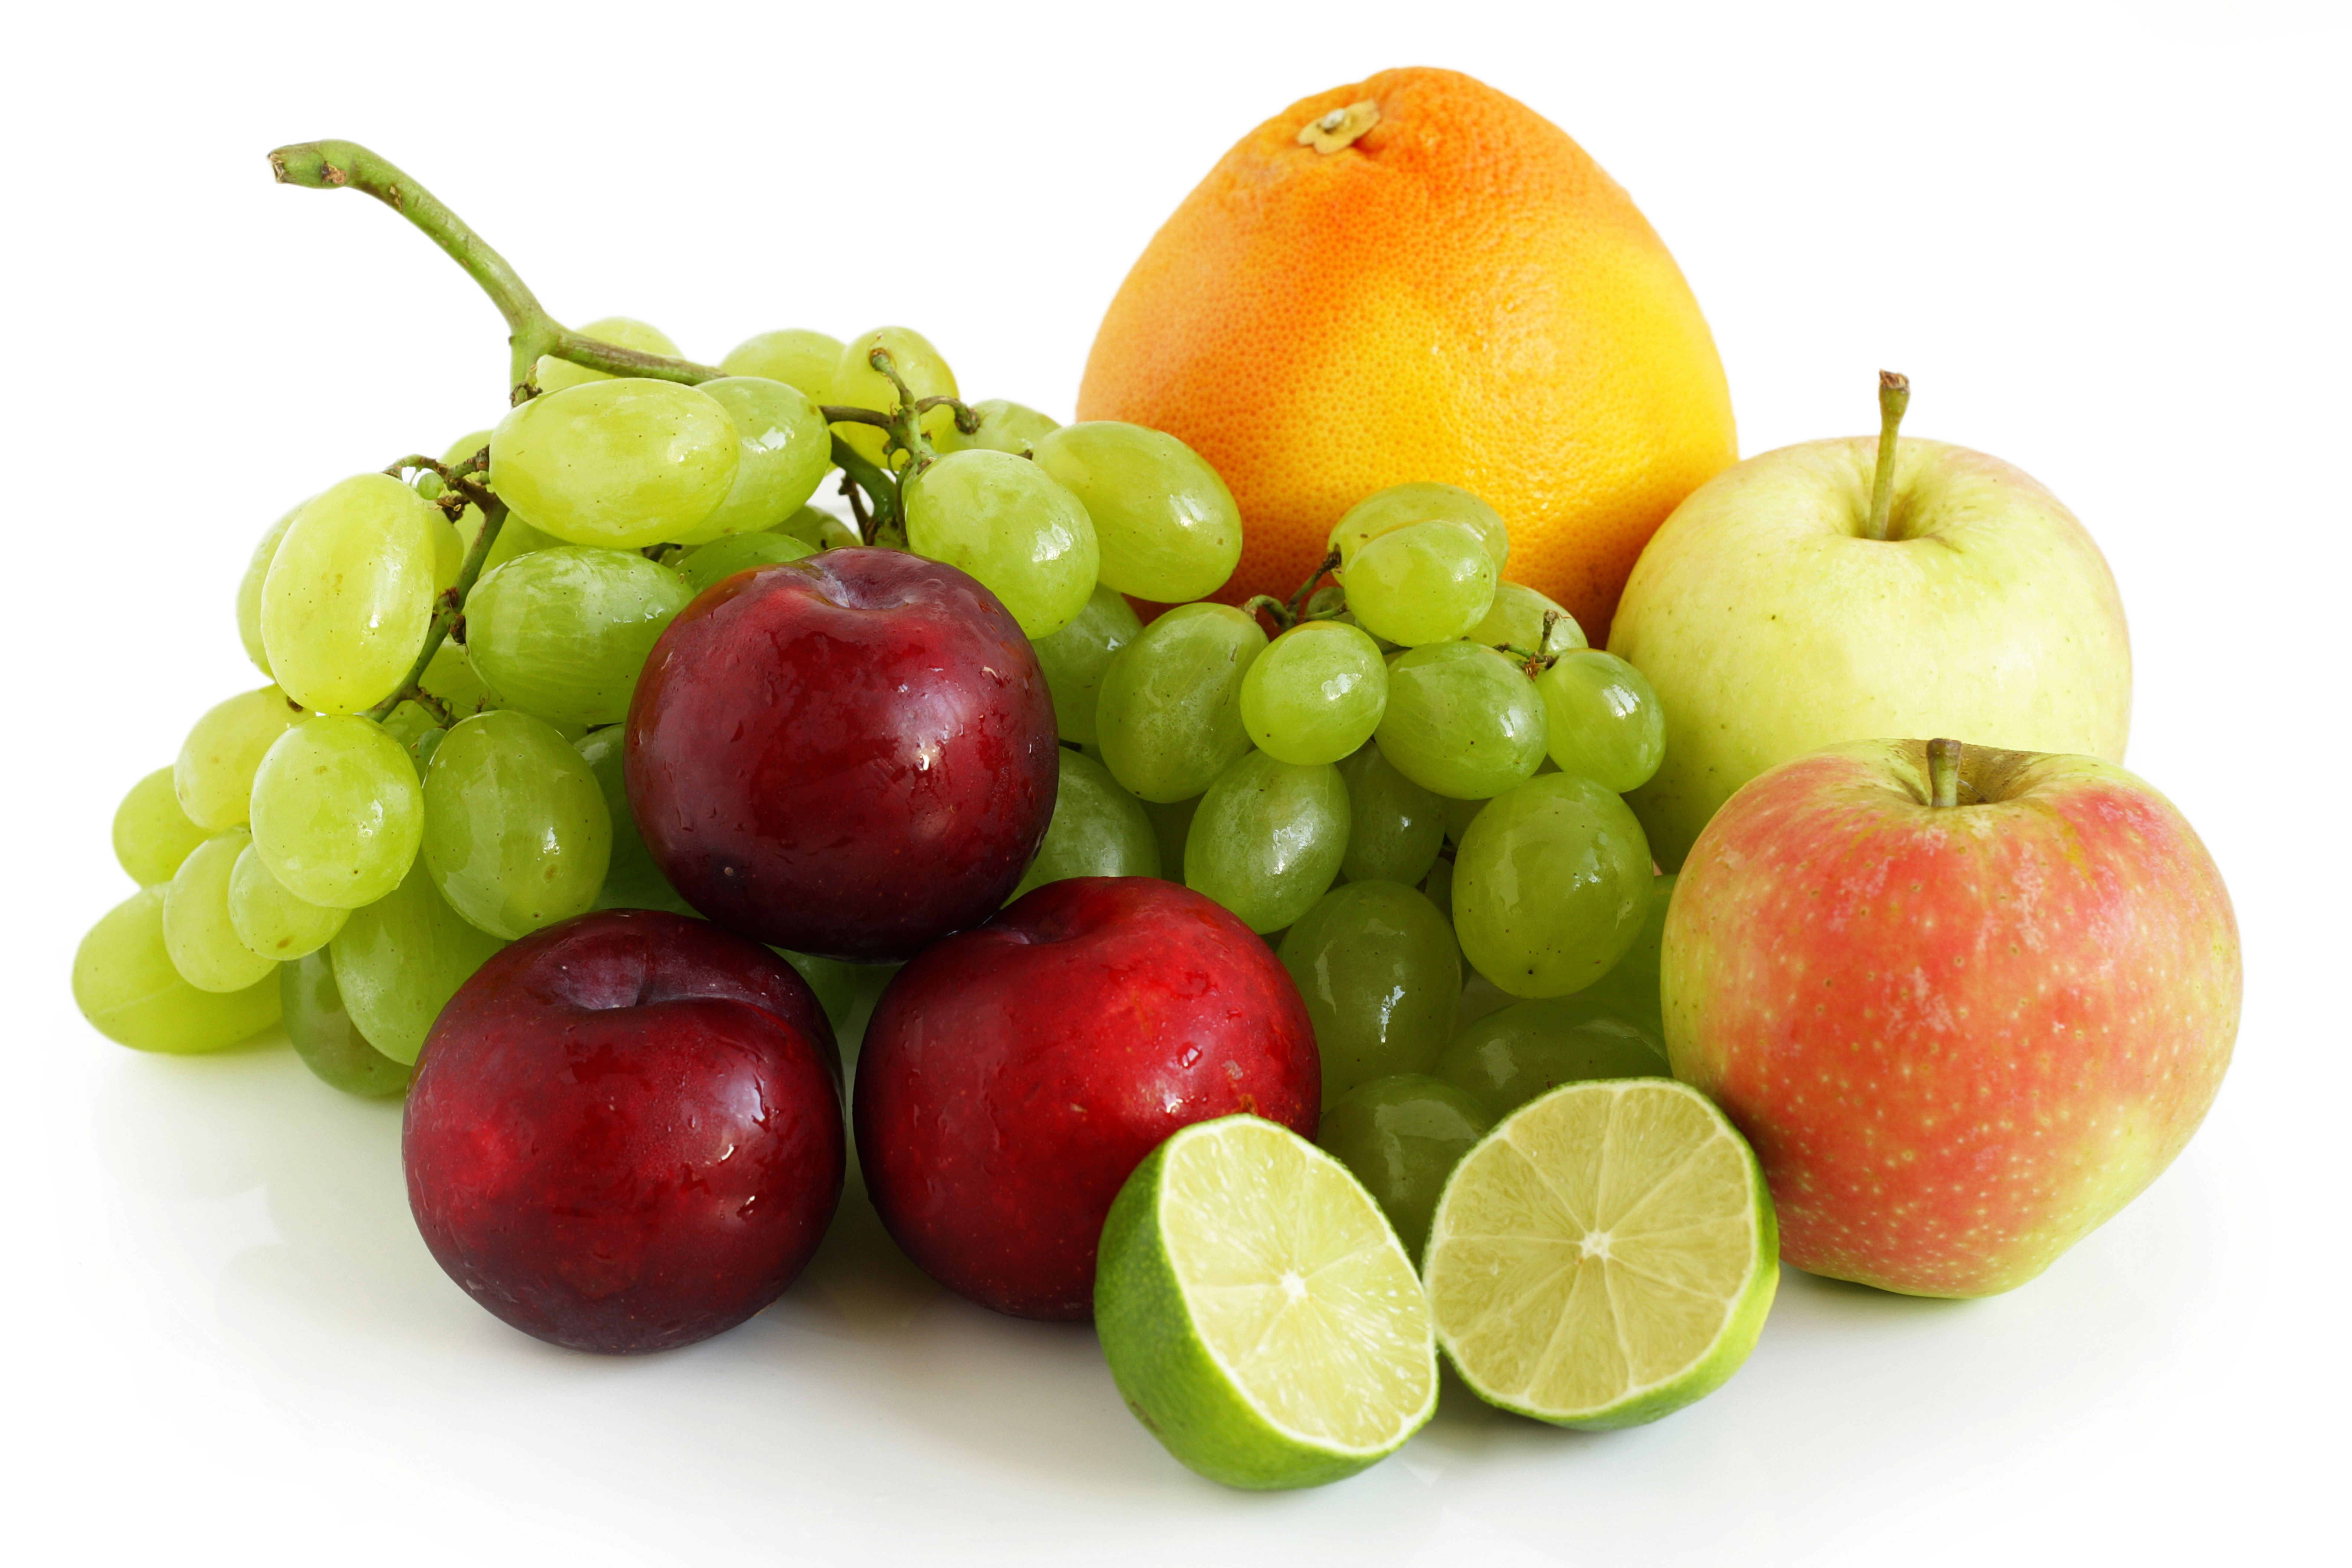 Variety of Fresh Fruit 553.36 Kb